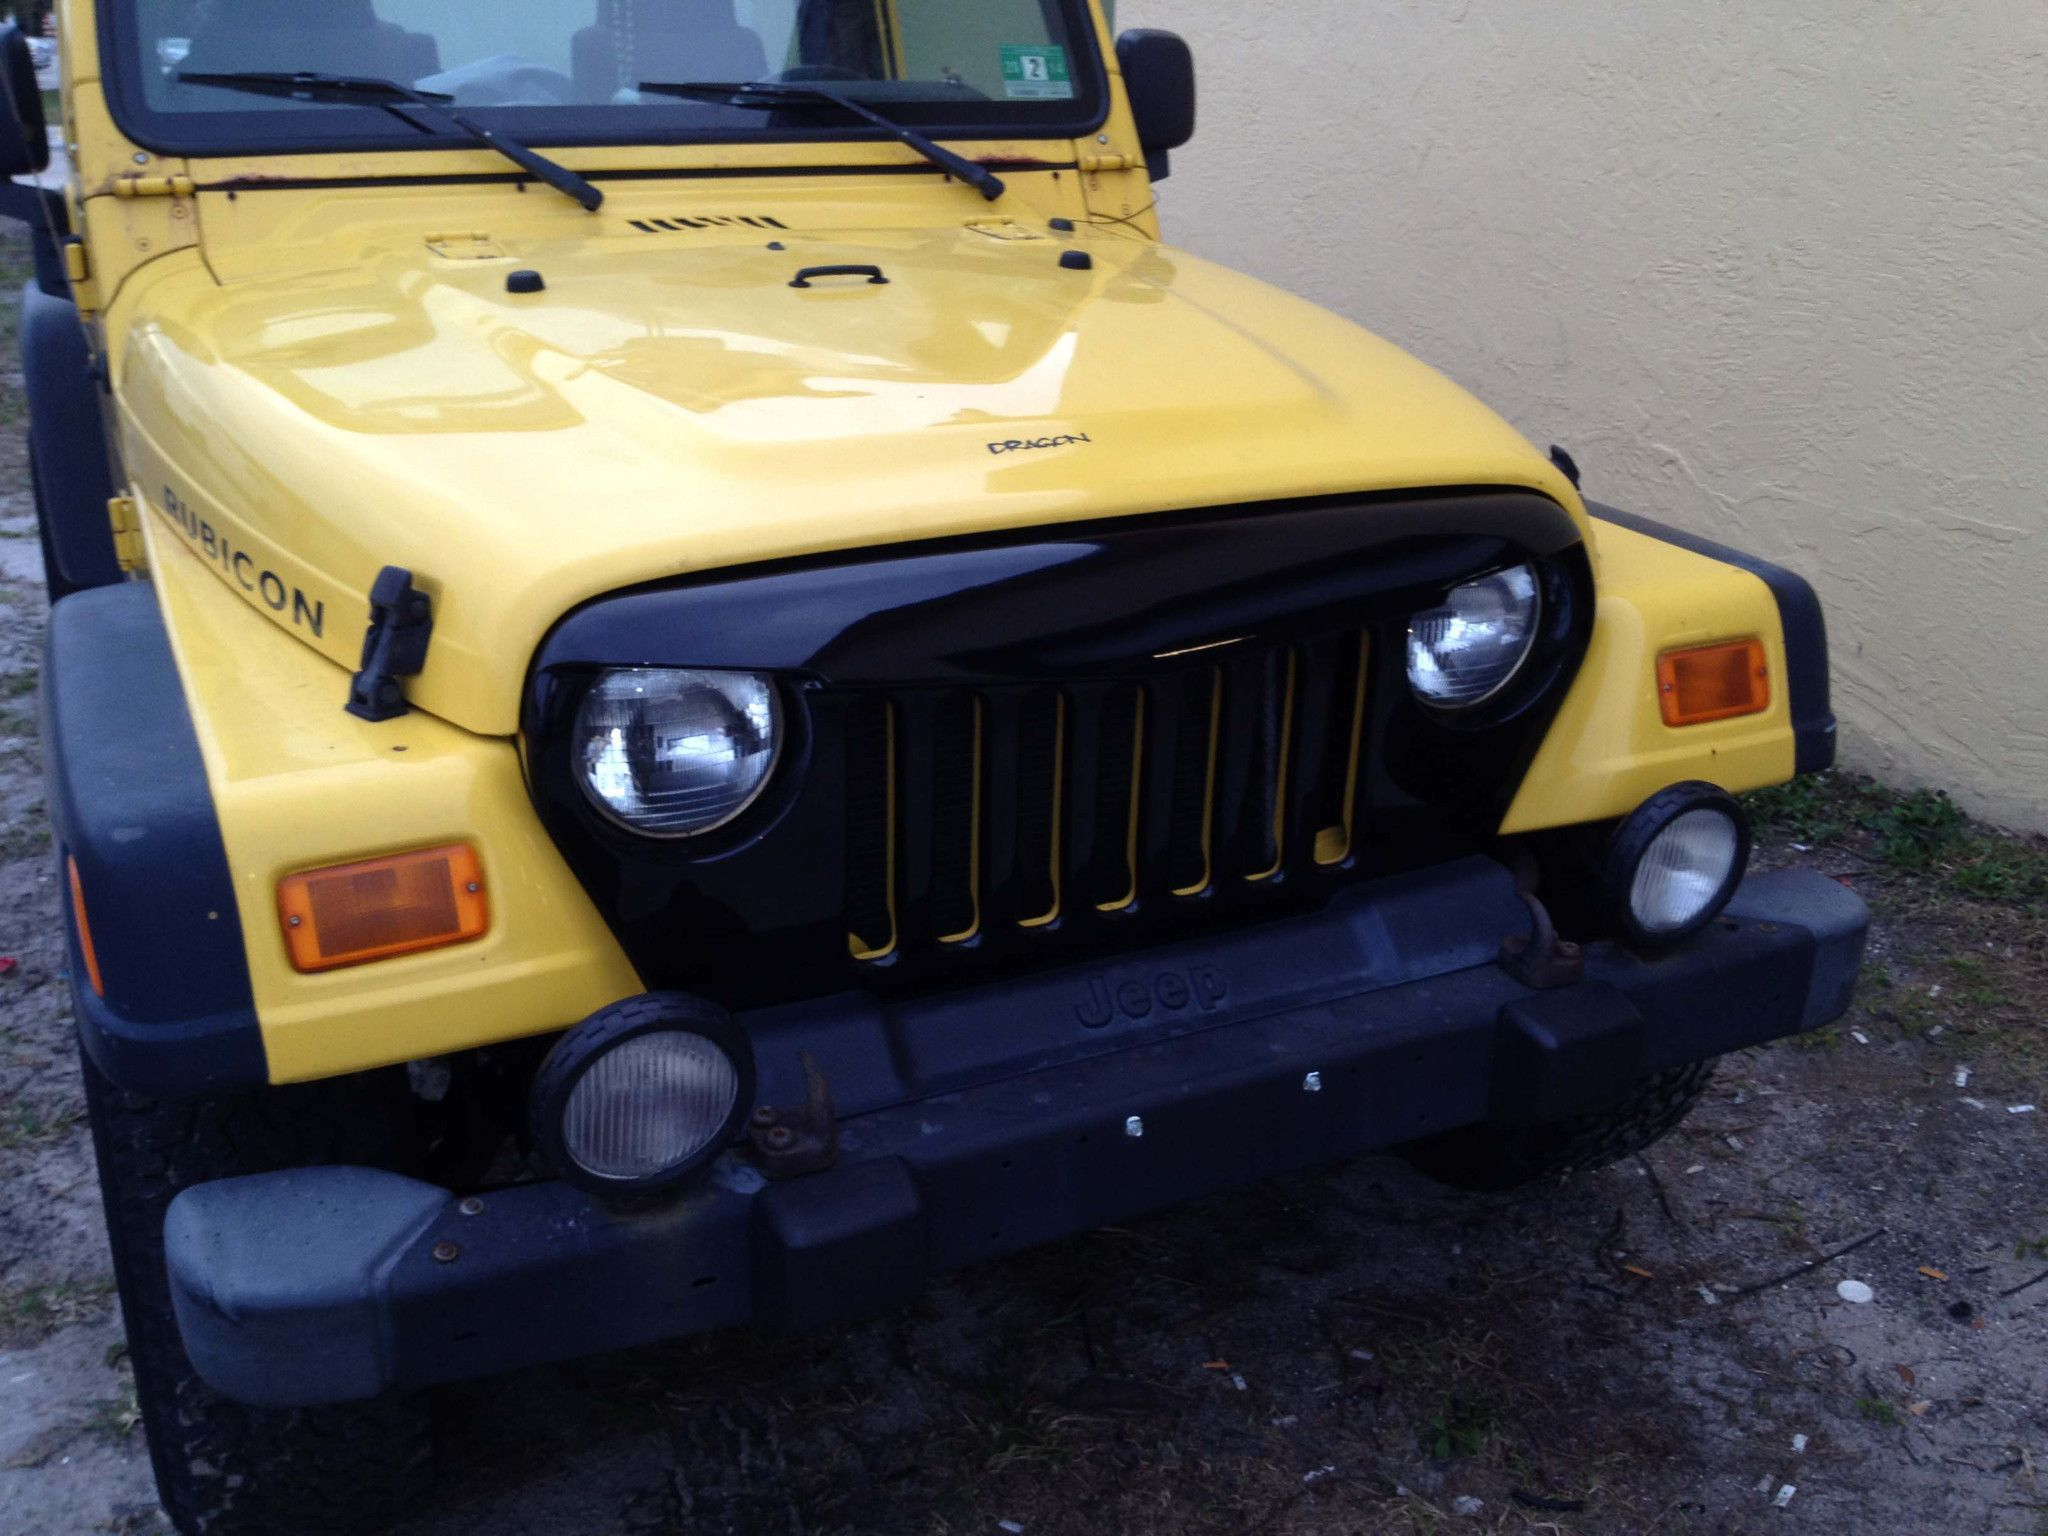 Aggressor Angry Jeep Grill Cover Tj Or Lj Wrangler Grille Black